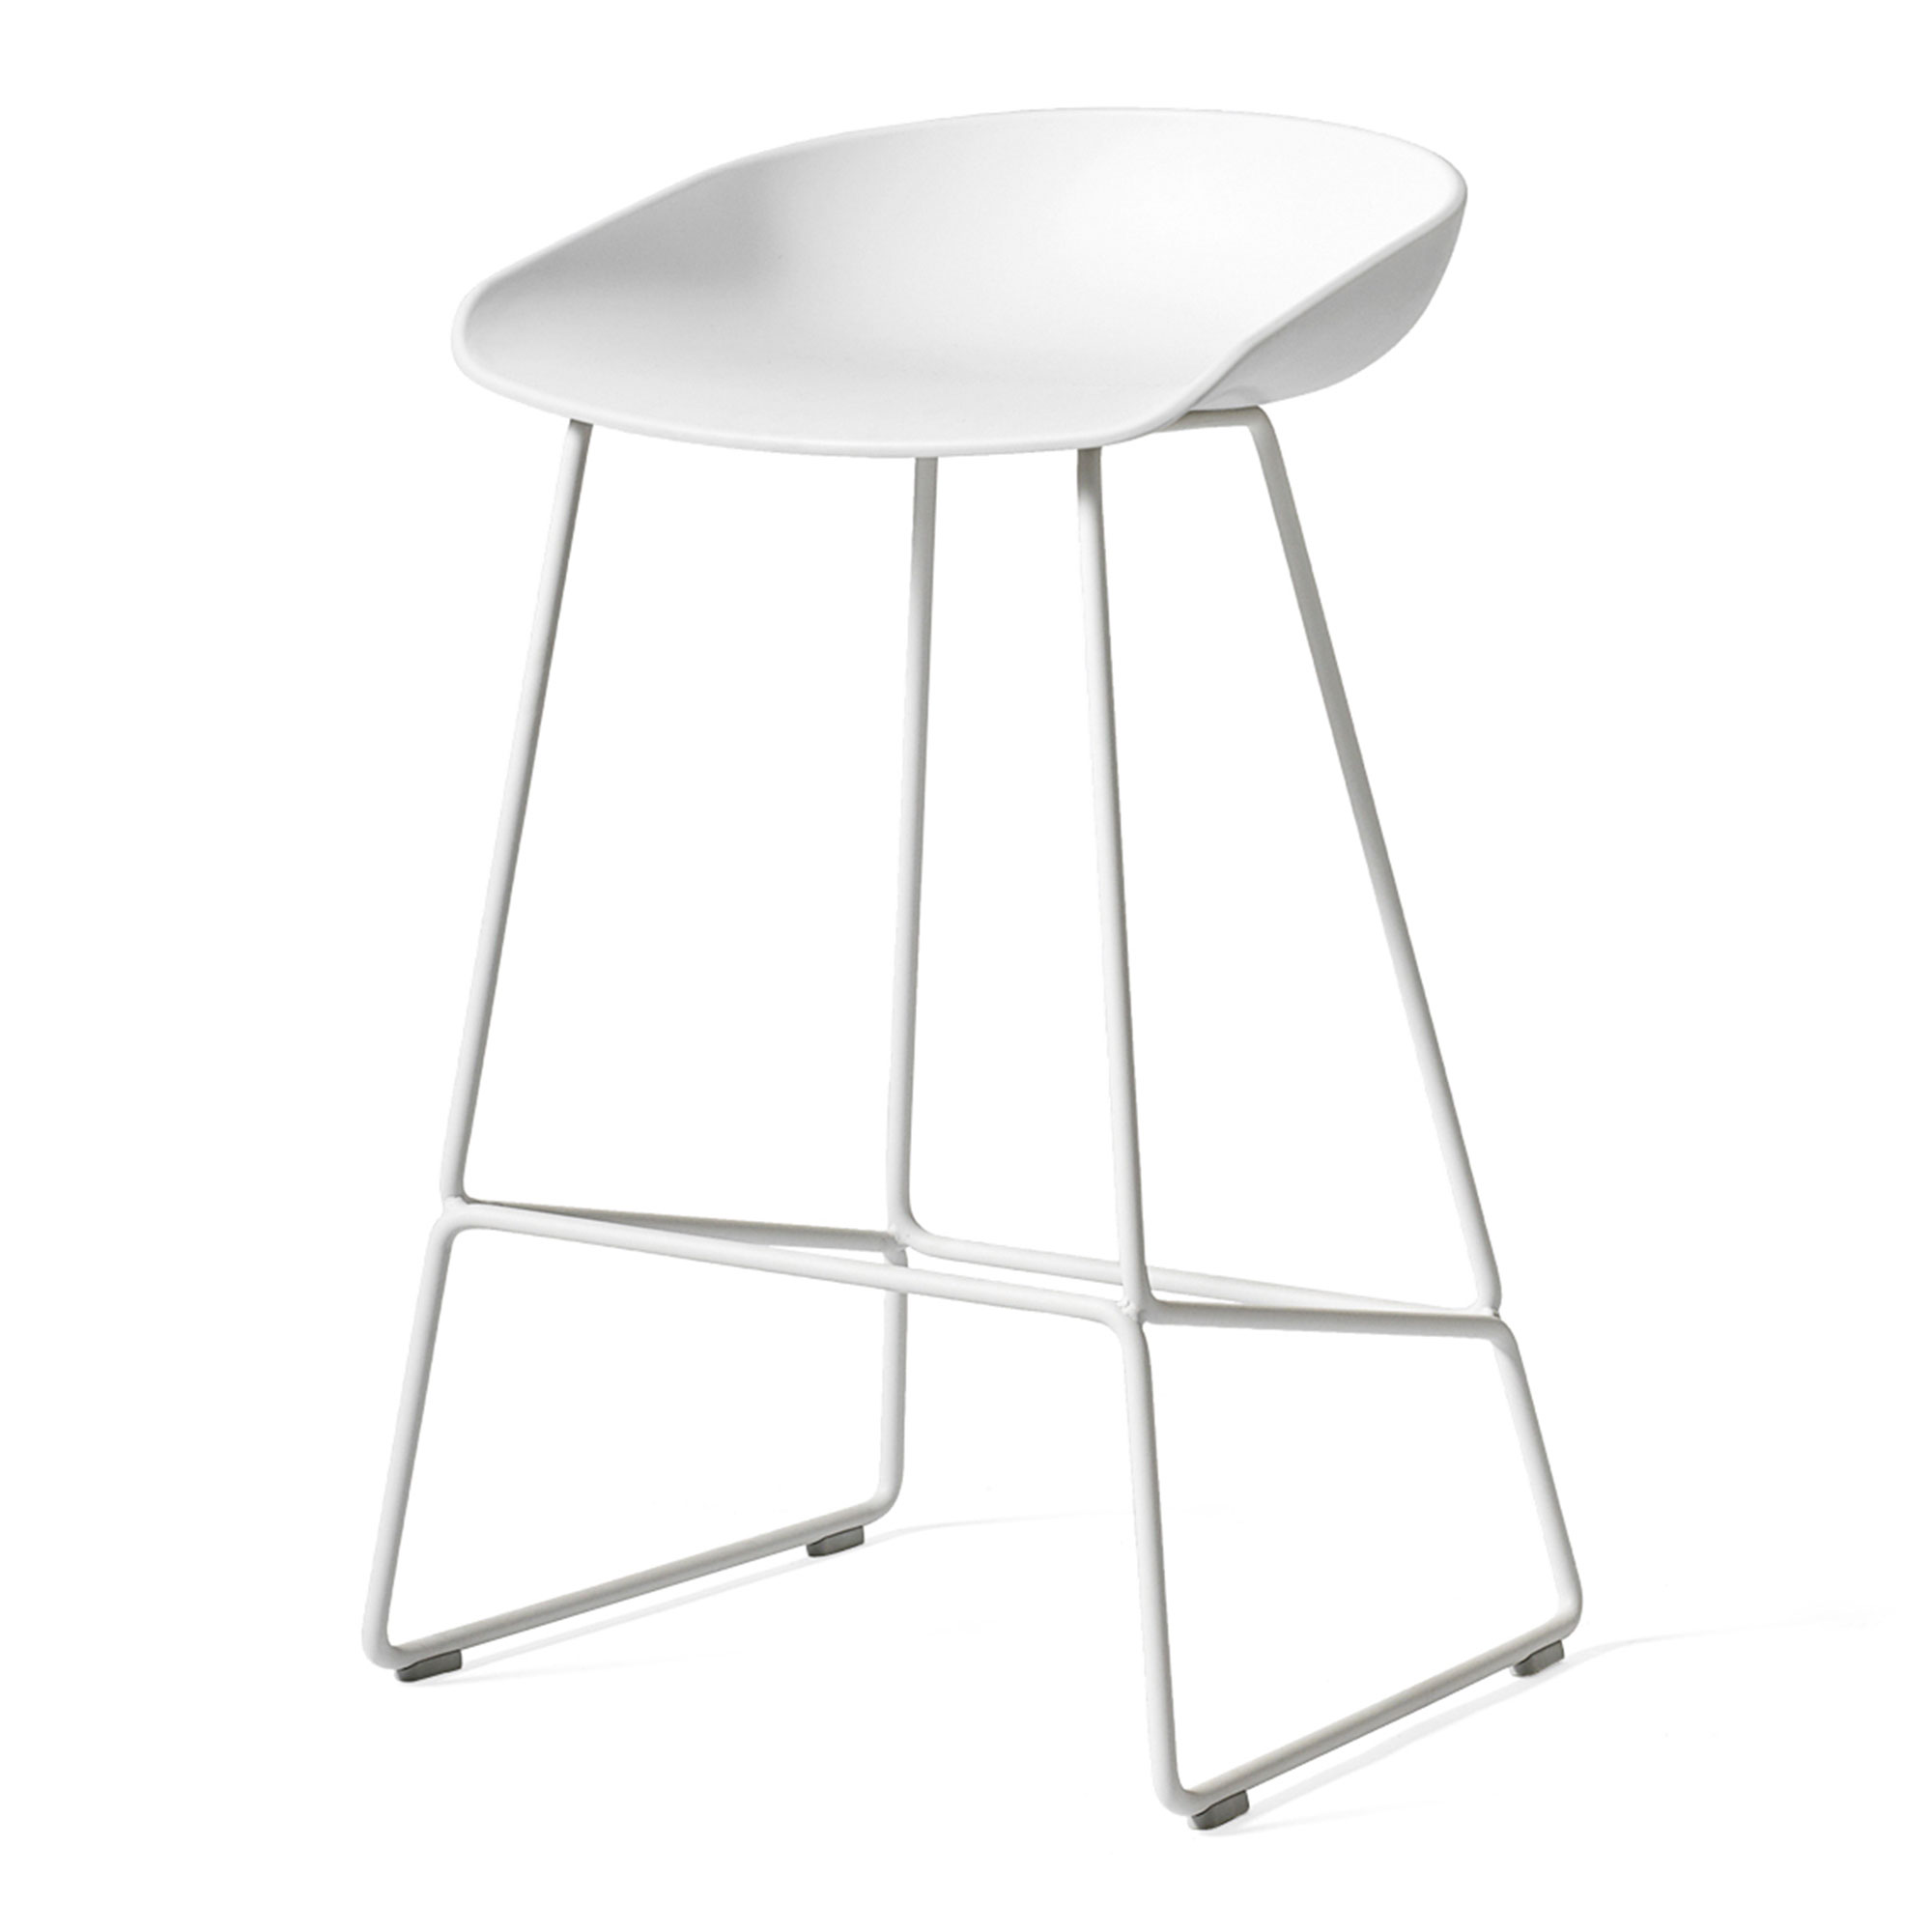 About a Stool AAS38 White White Powder Coated Steel